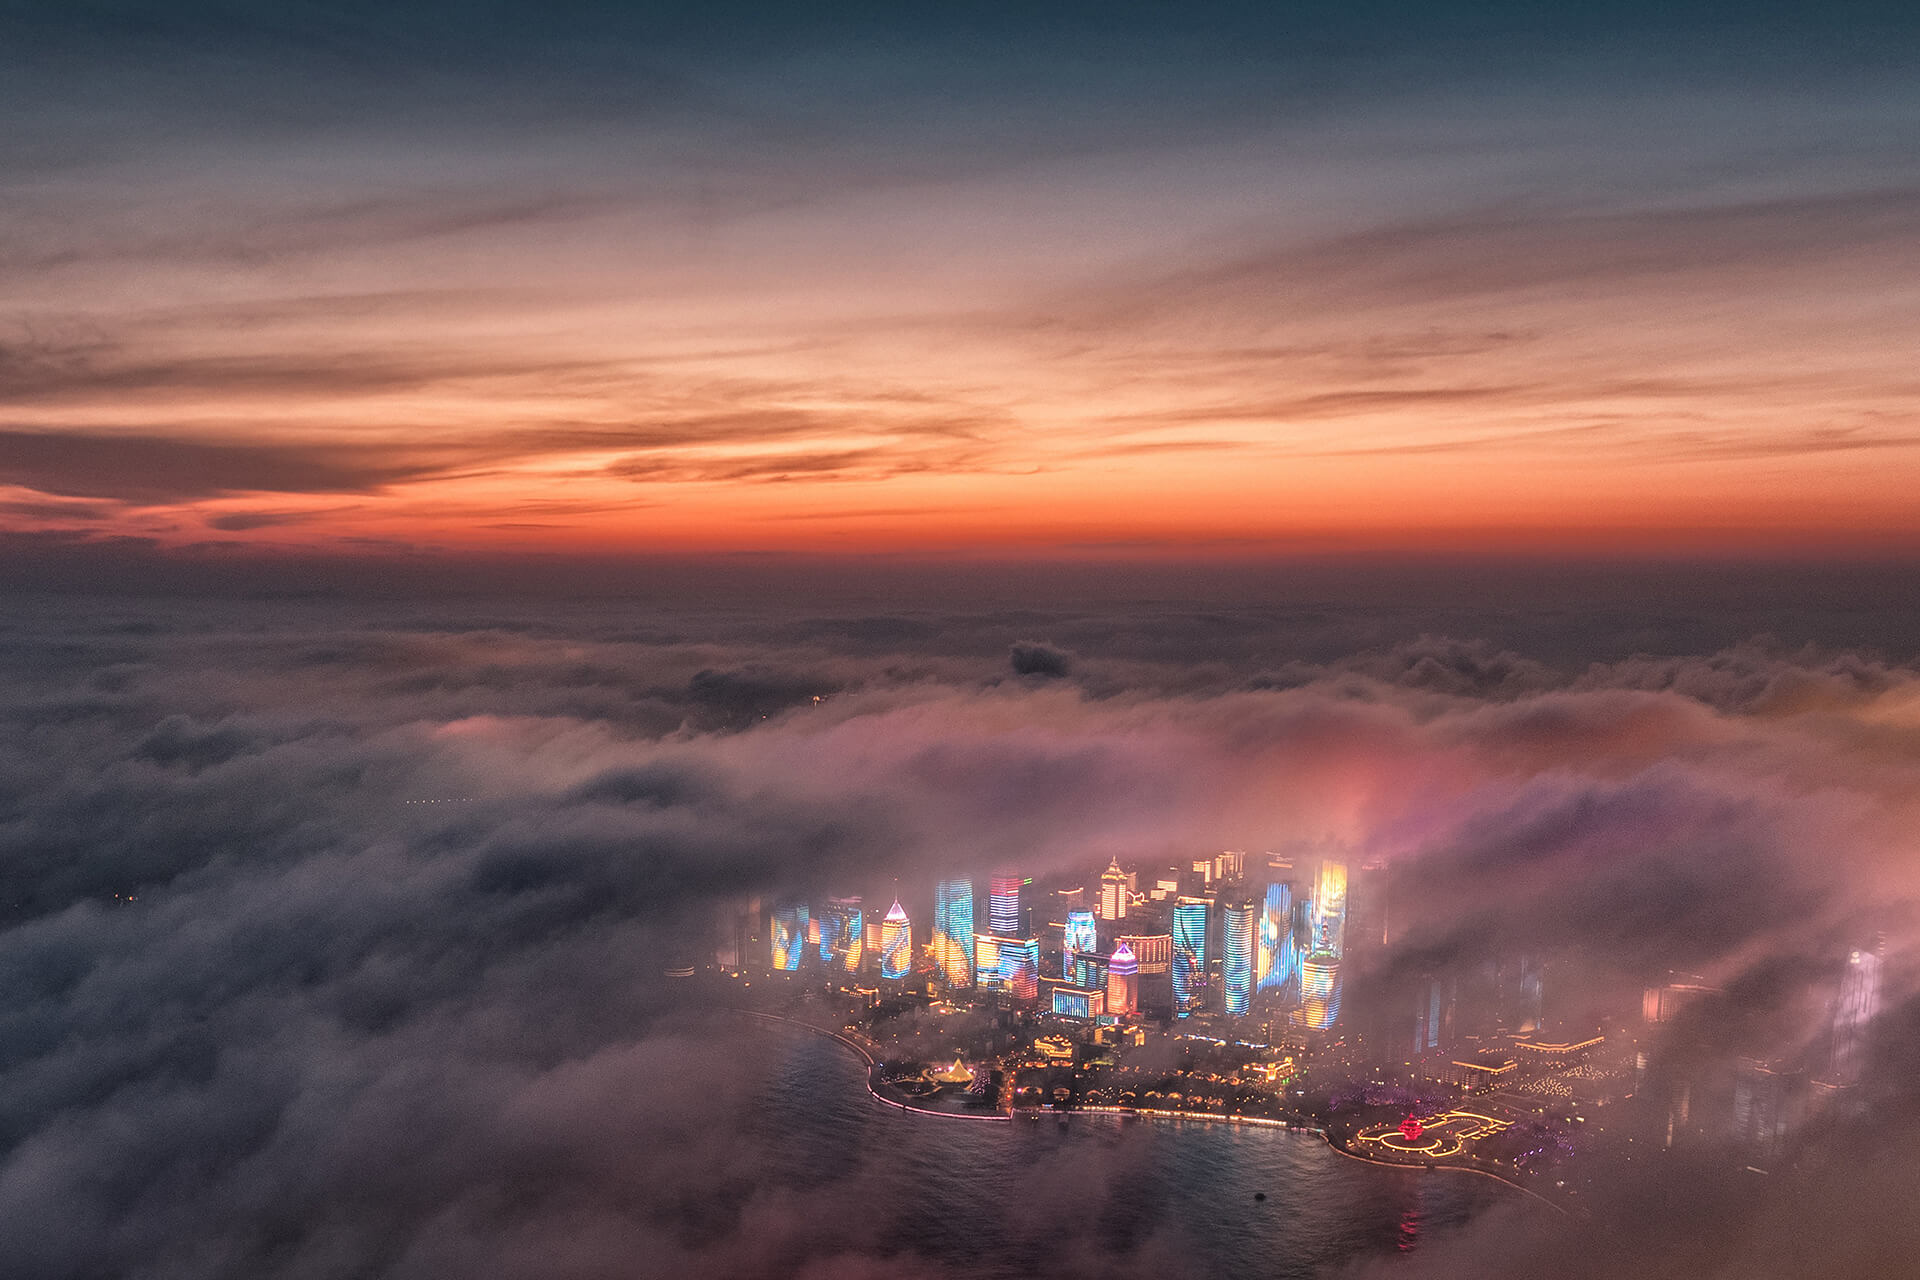 Fog drifts across skyscrapers on the waterfront in China